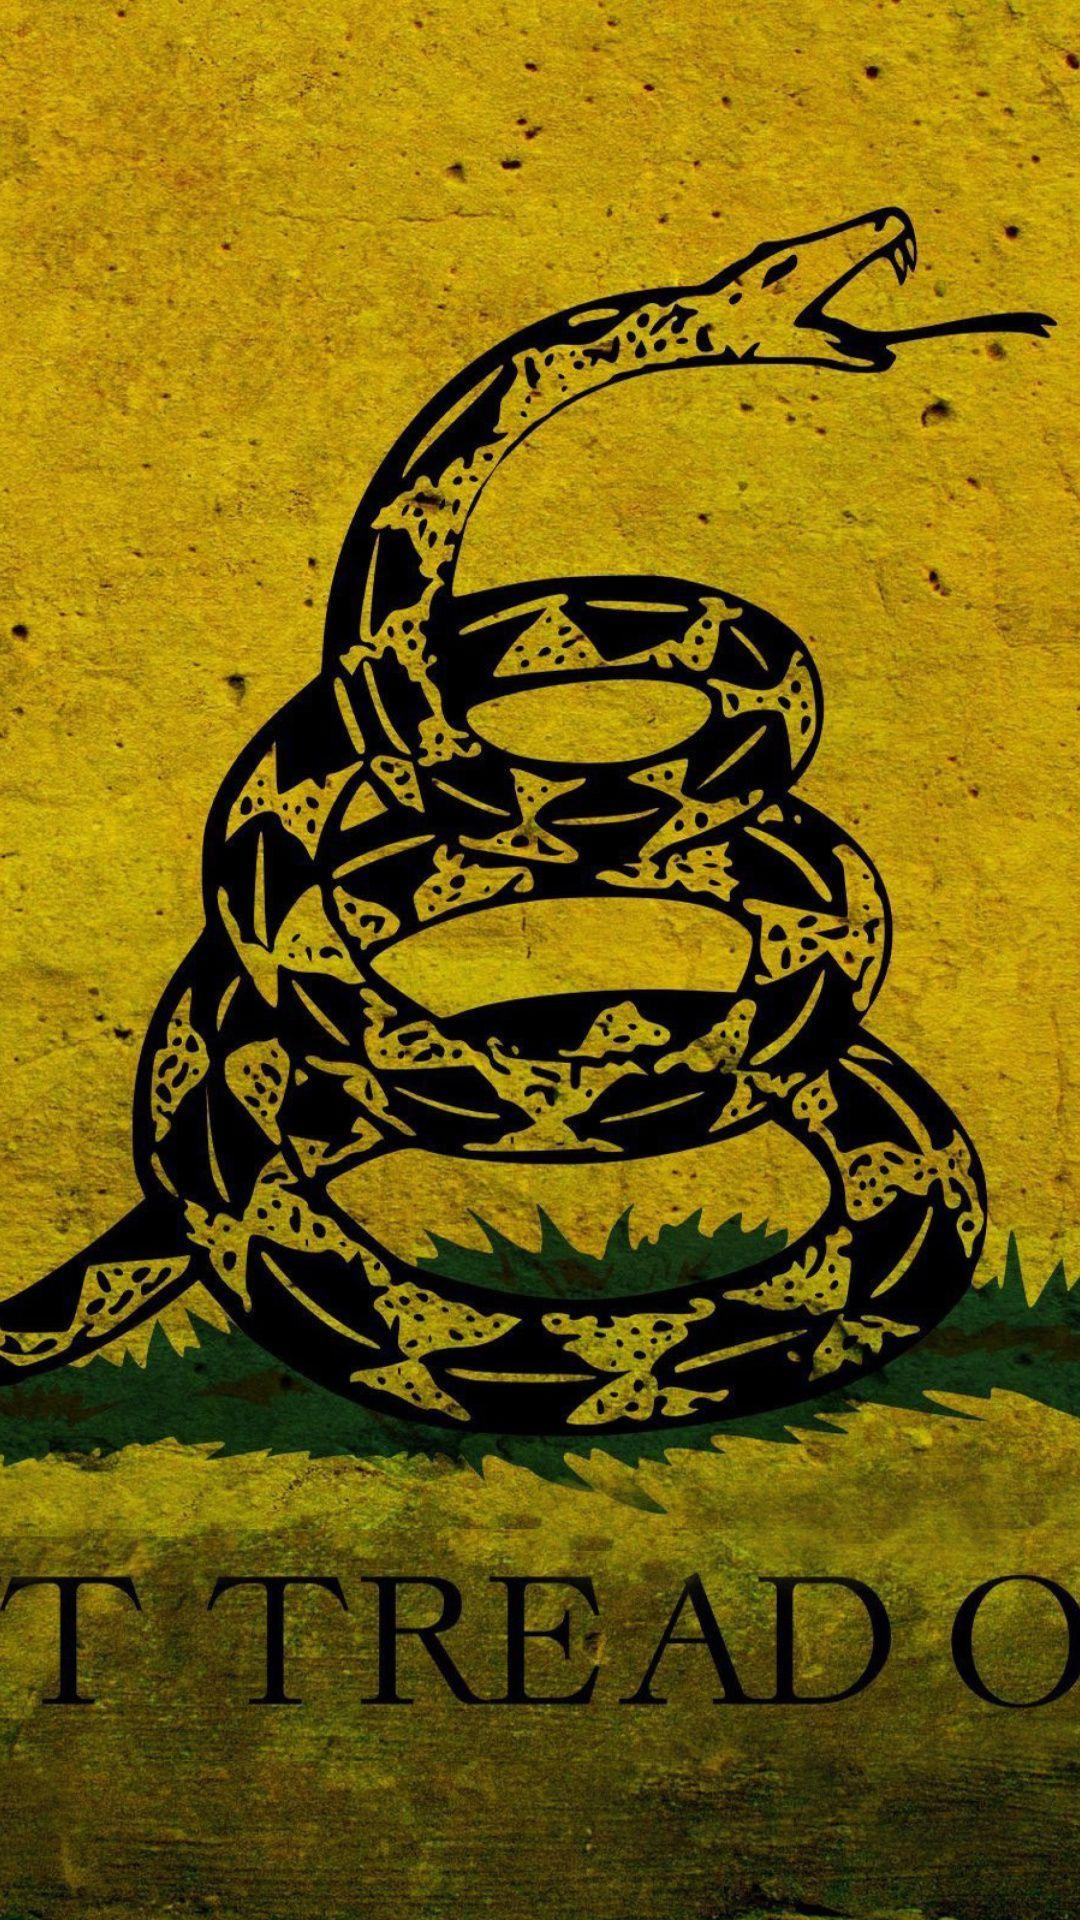 1080x1920 Gadsden flag dont tread on me iphone wallpapers | iPhone Wallpapers